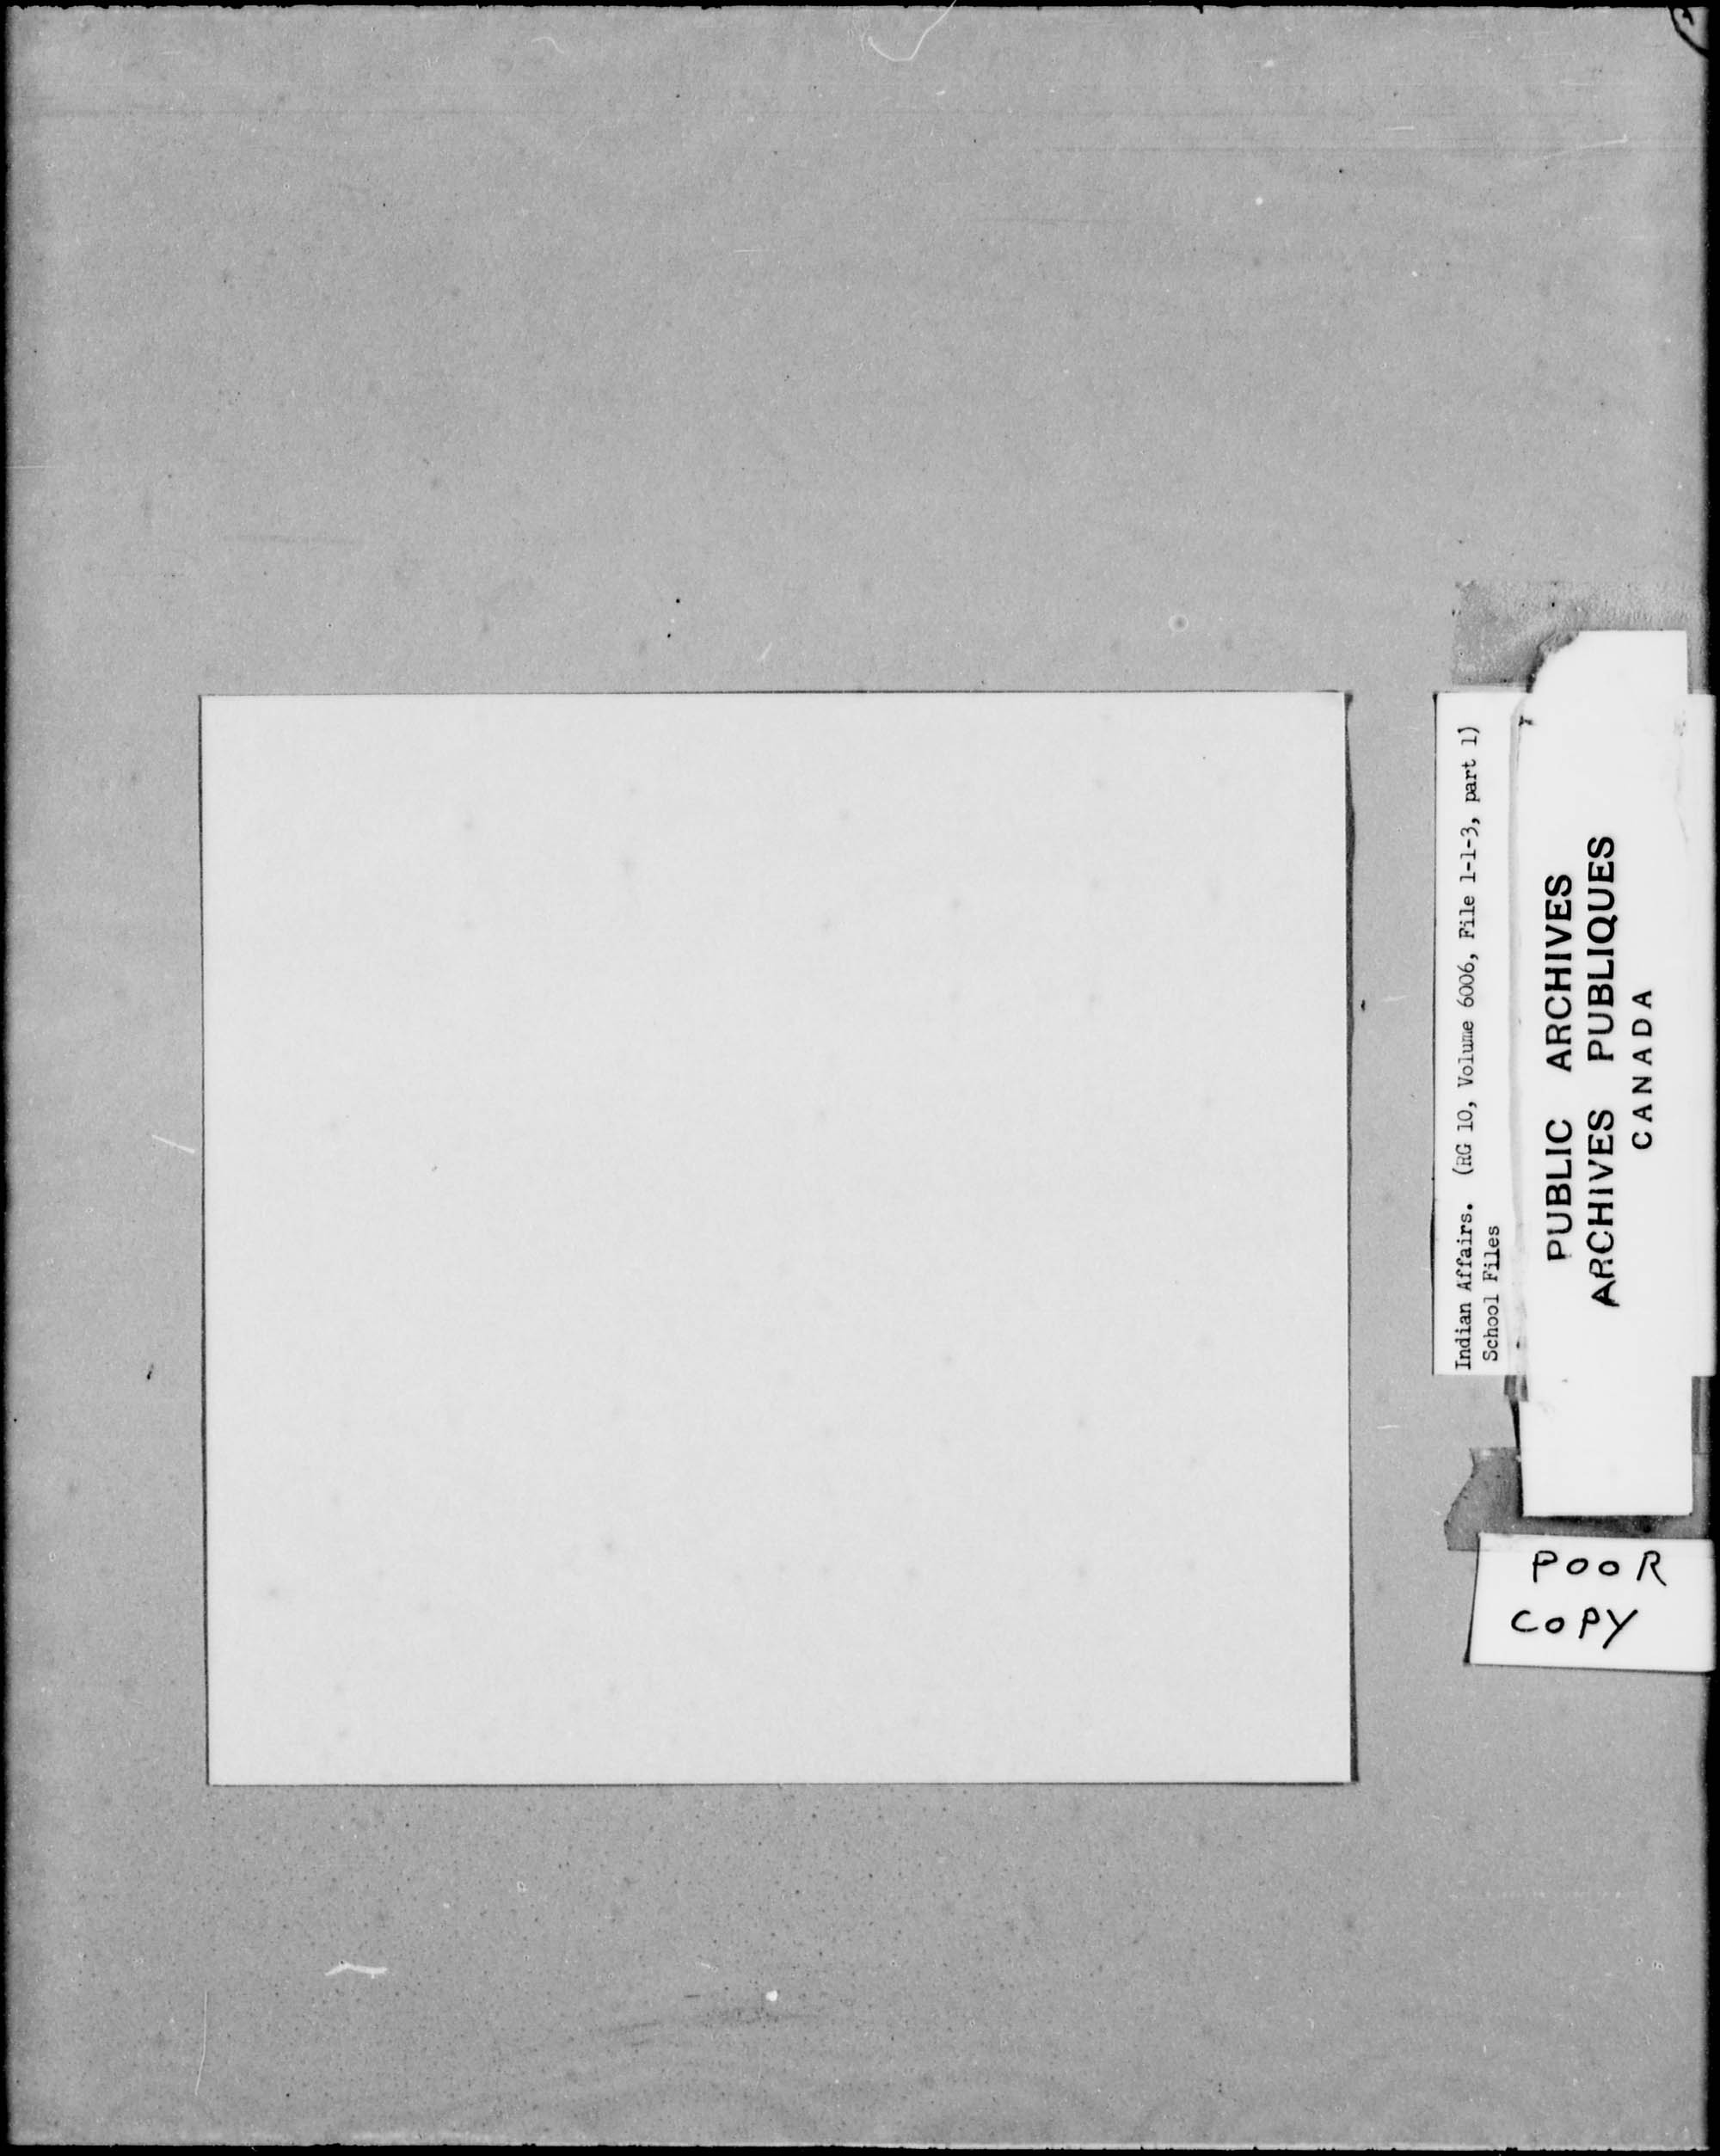 Title: School Files Series - 1879-1953 (RG10) - Mikan Number: 157505 - Microform: c-8137